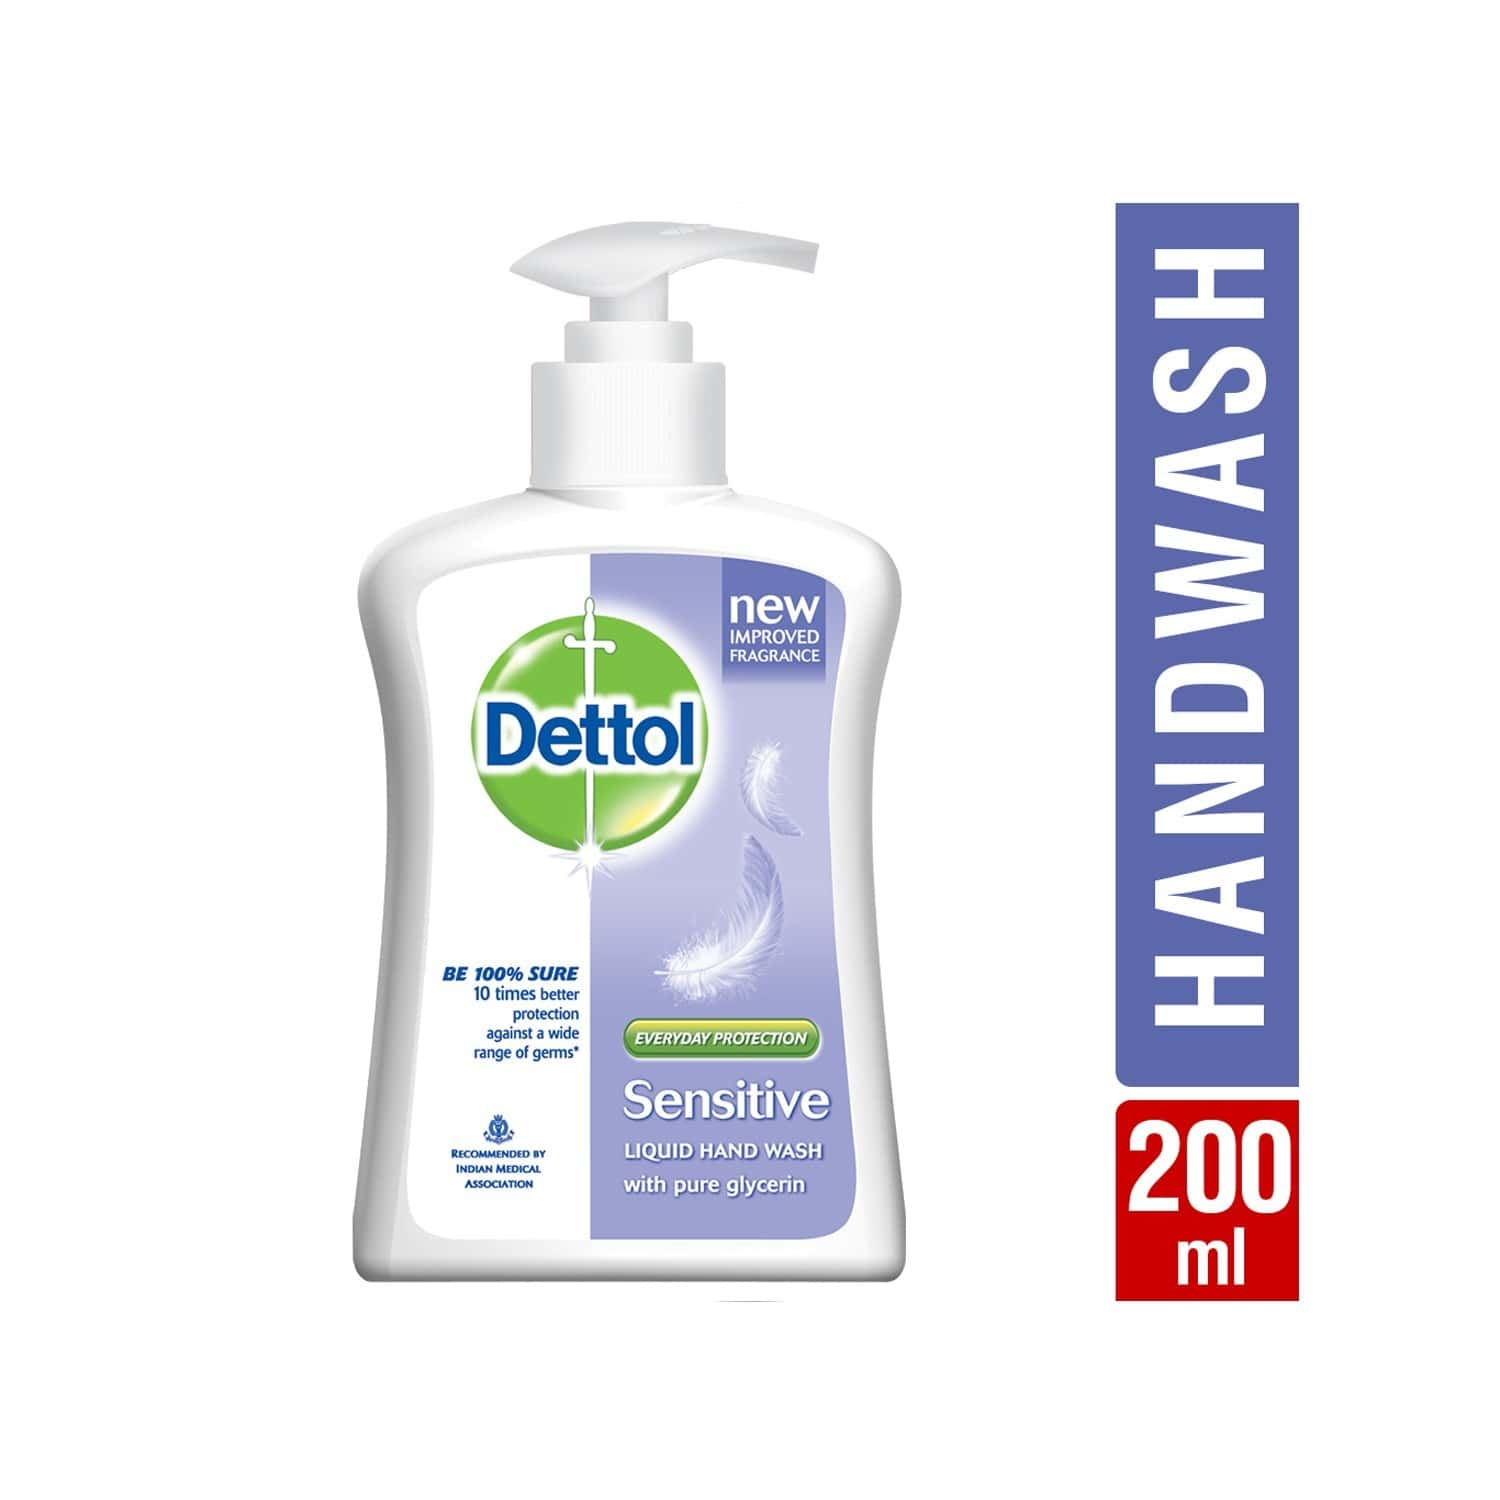 Dettol Ph-balanced Sensitive Handwash Bottle Of 200 Ml